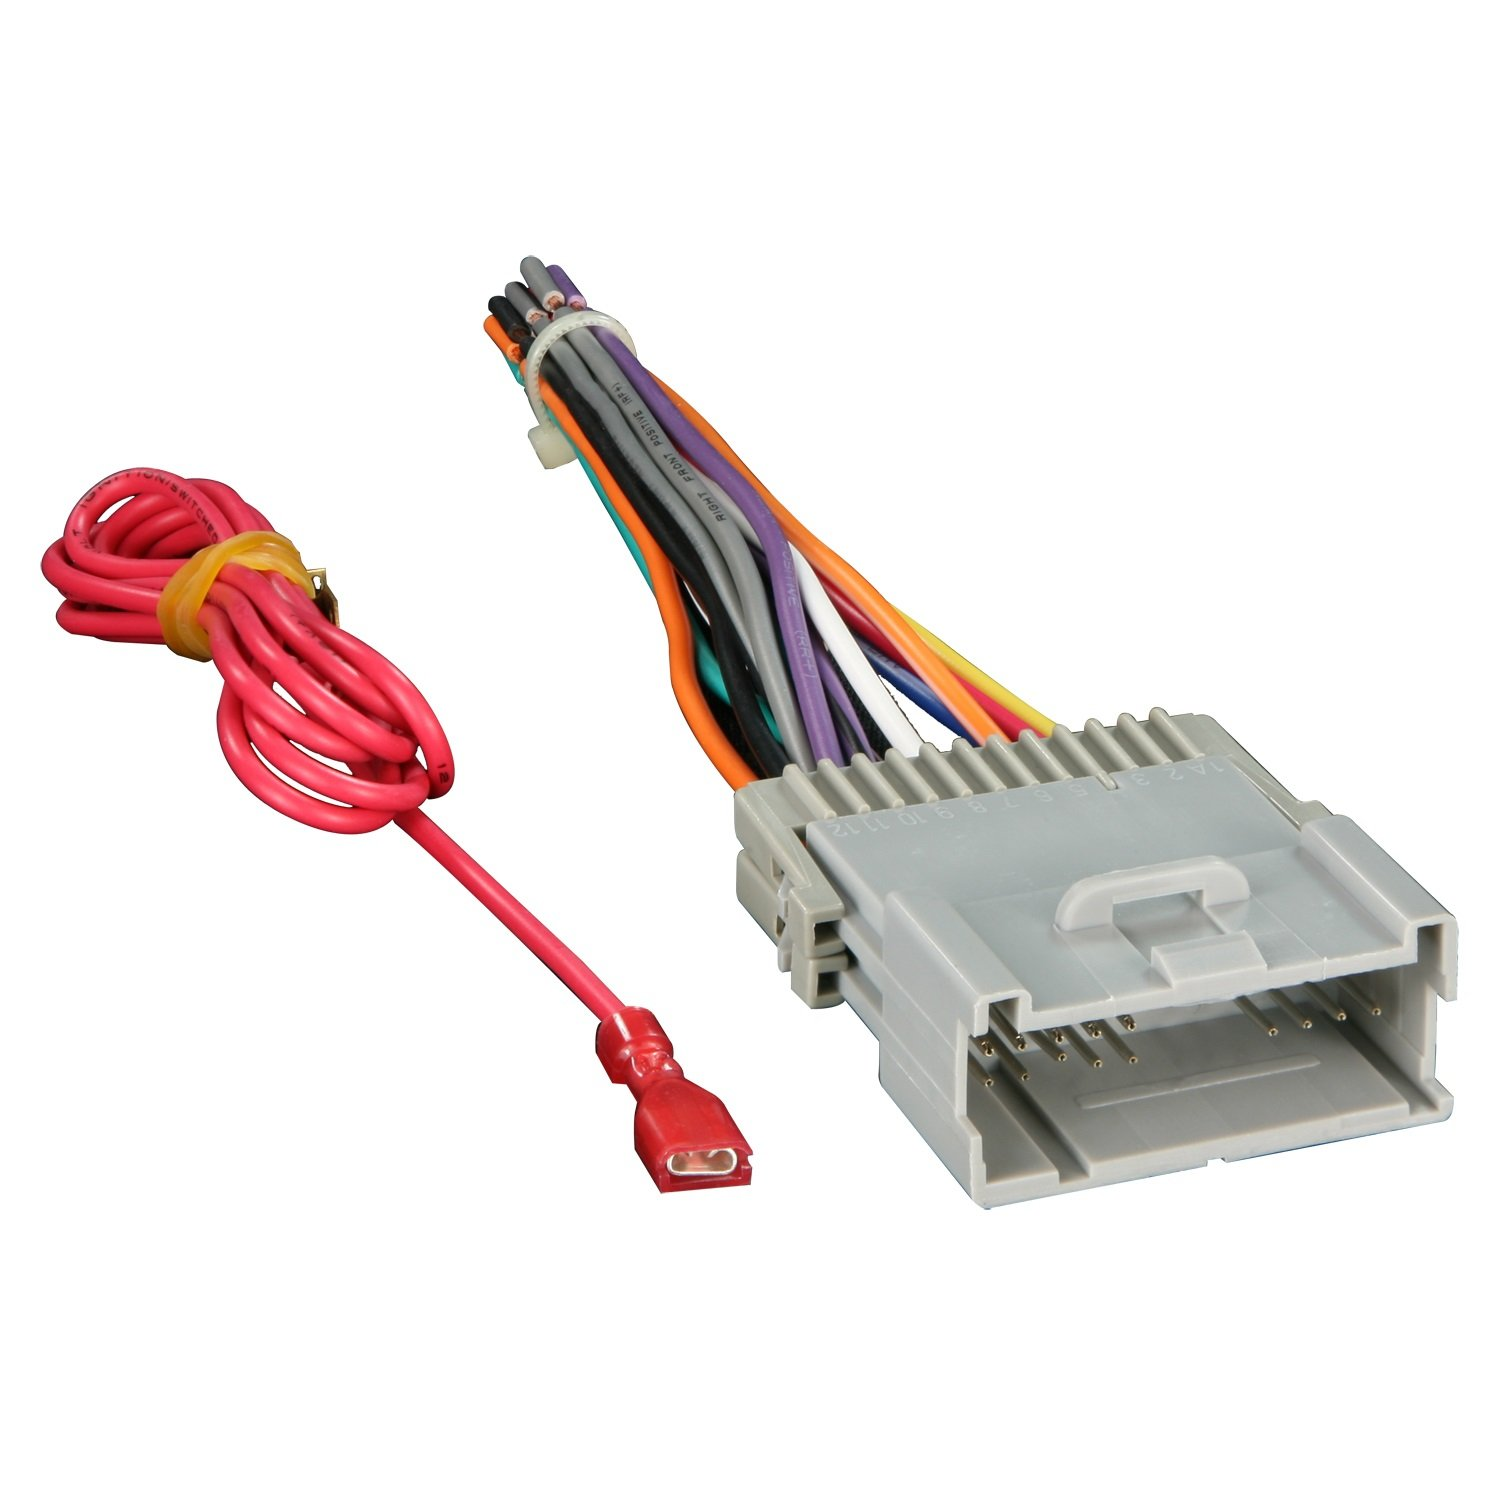 61eewxp9orL._SL1500_ amazon com metra 70 2003 radio wiring harness for gm 98 08 Wiring Harness Diagram at edmiracle.co